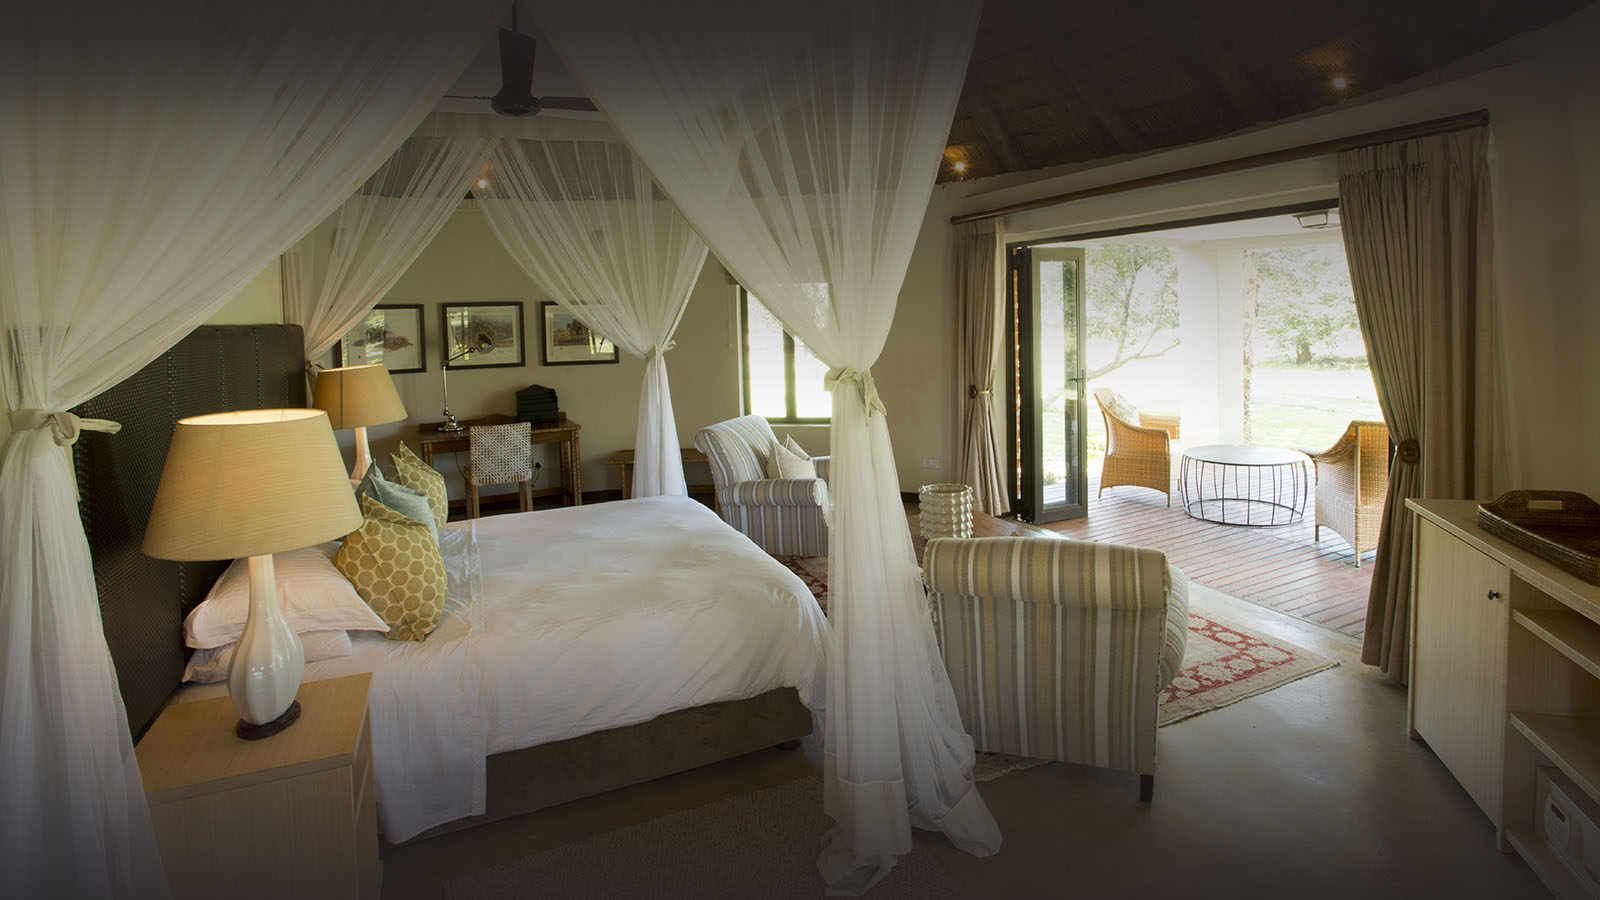 lilayi lodge zambia-in-style-tours-safari-packages-lodges-accommodation-lusaka-bedroom